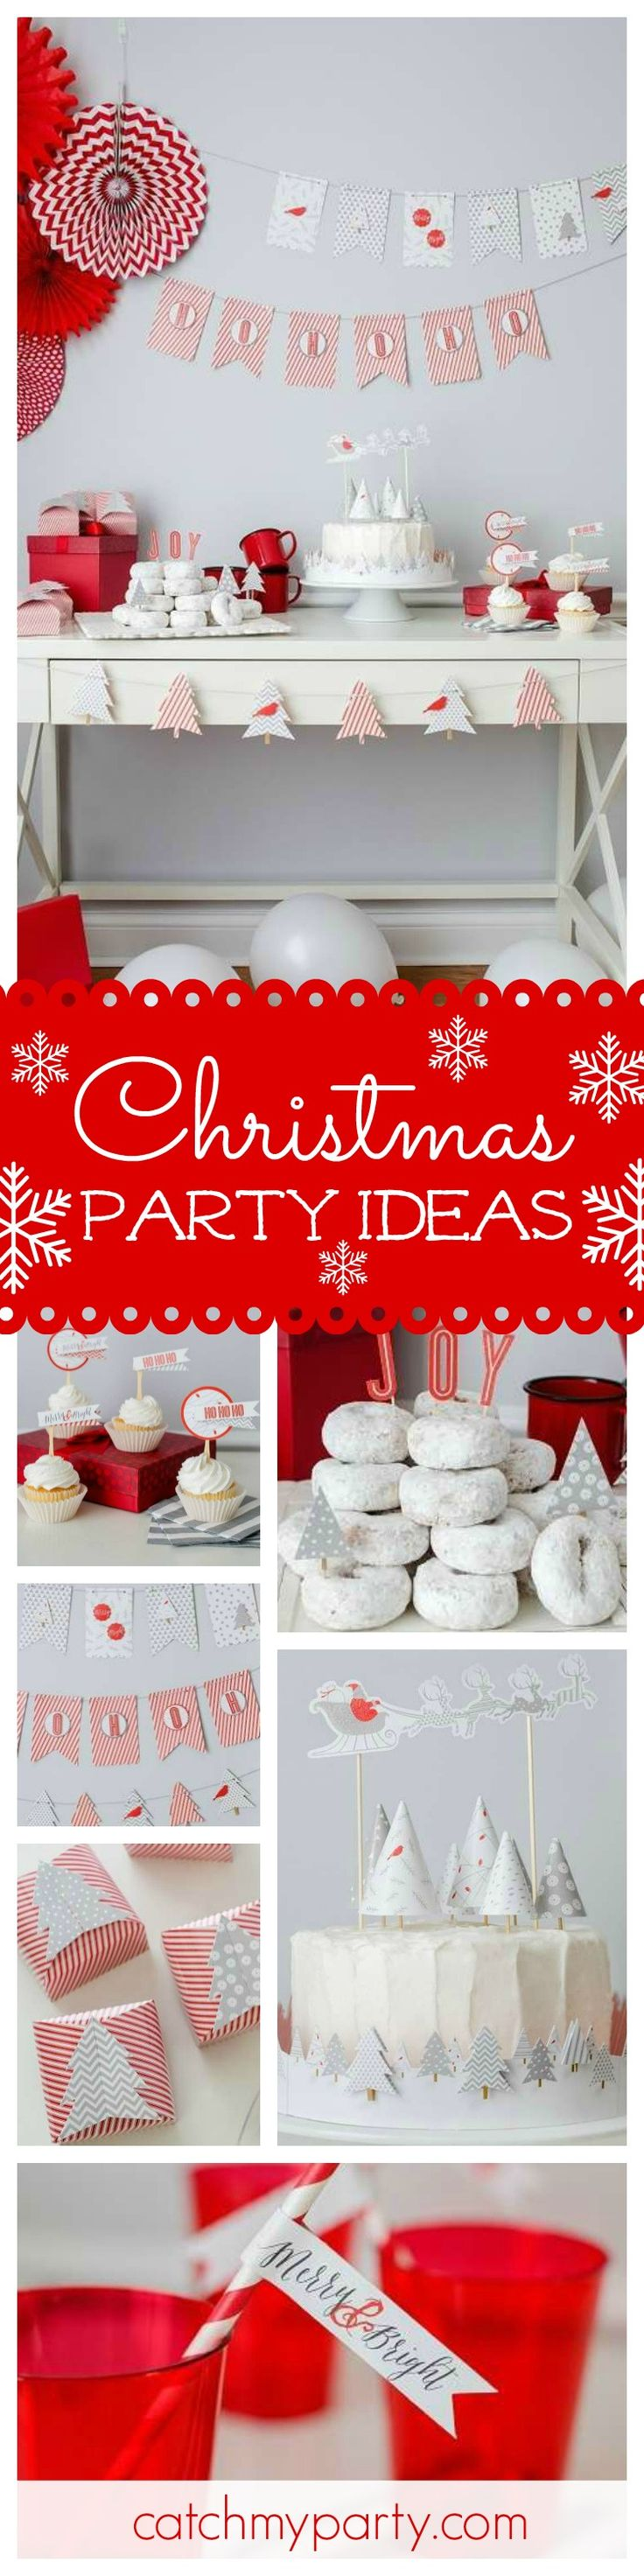 With the holidays coming up don't miss this fun Merry and Bright Christmas party!  Love the cake!! See more party ideas and share yours at CatchMyParty.com